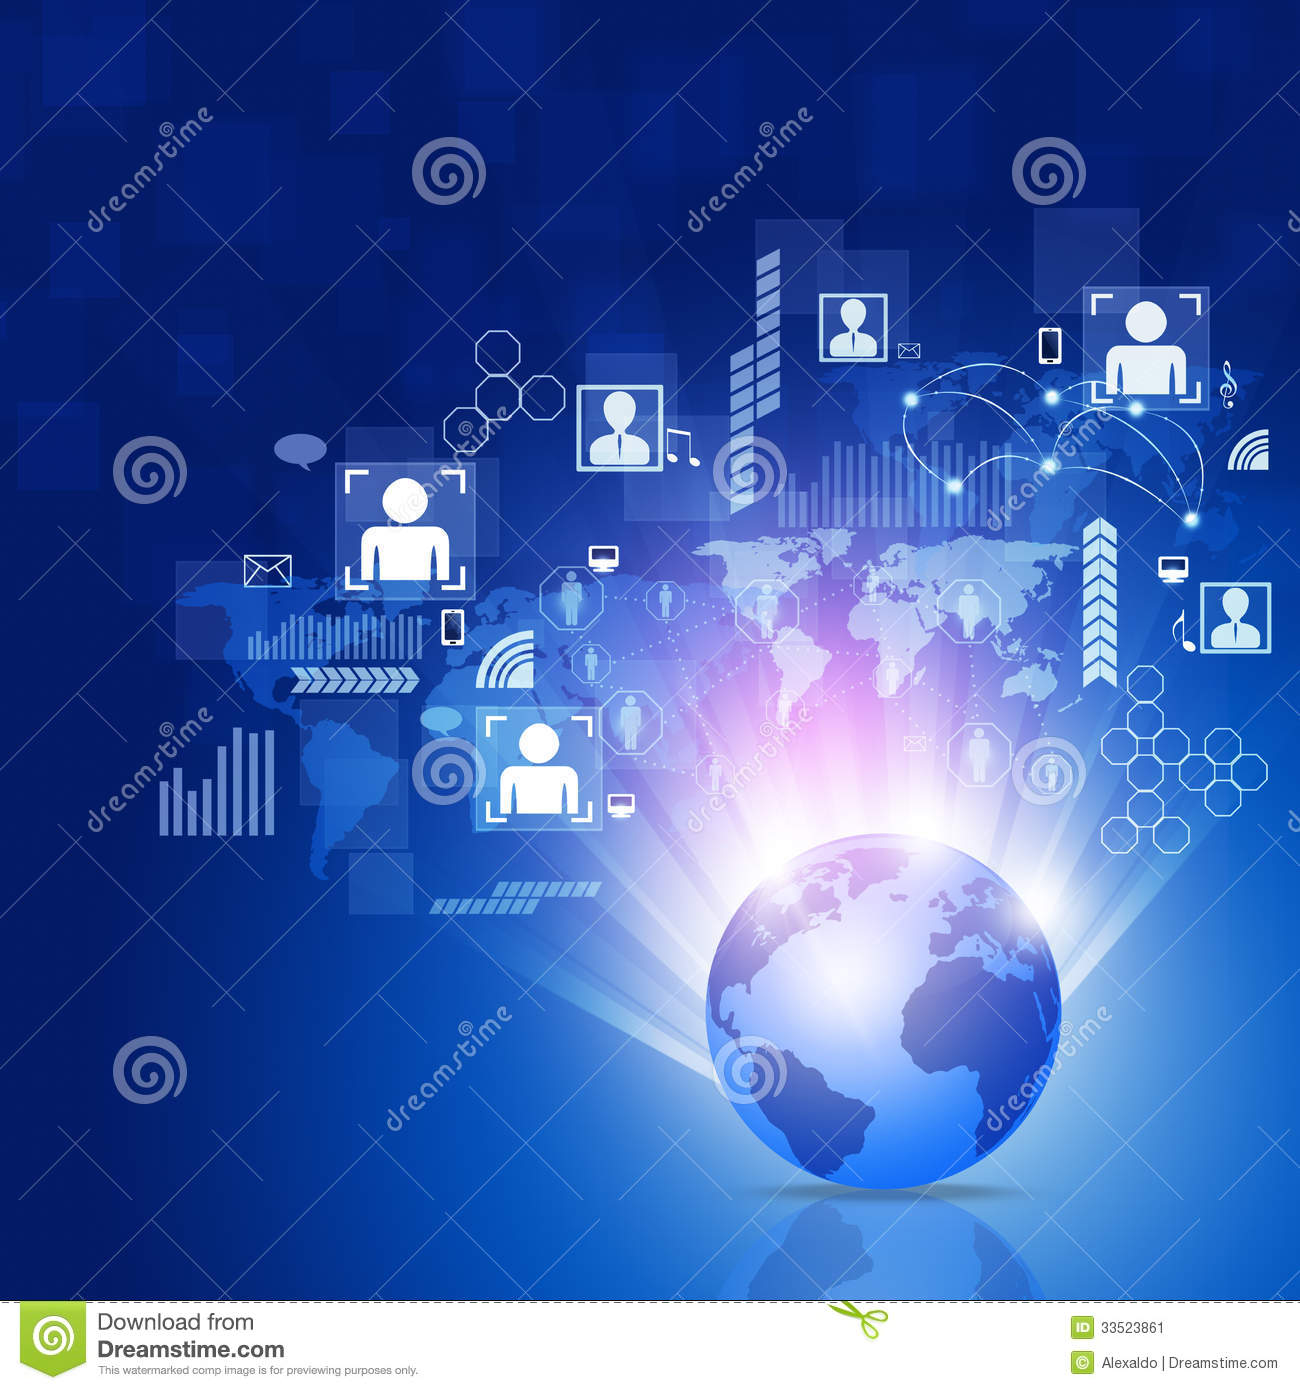 Trade In Cell Phone >> World Business Network Background Stock Image - Image ...